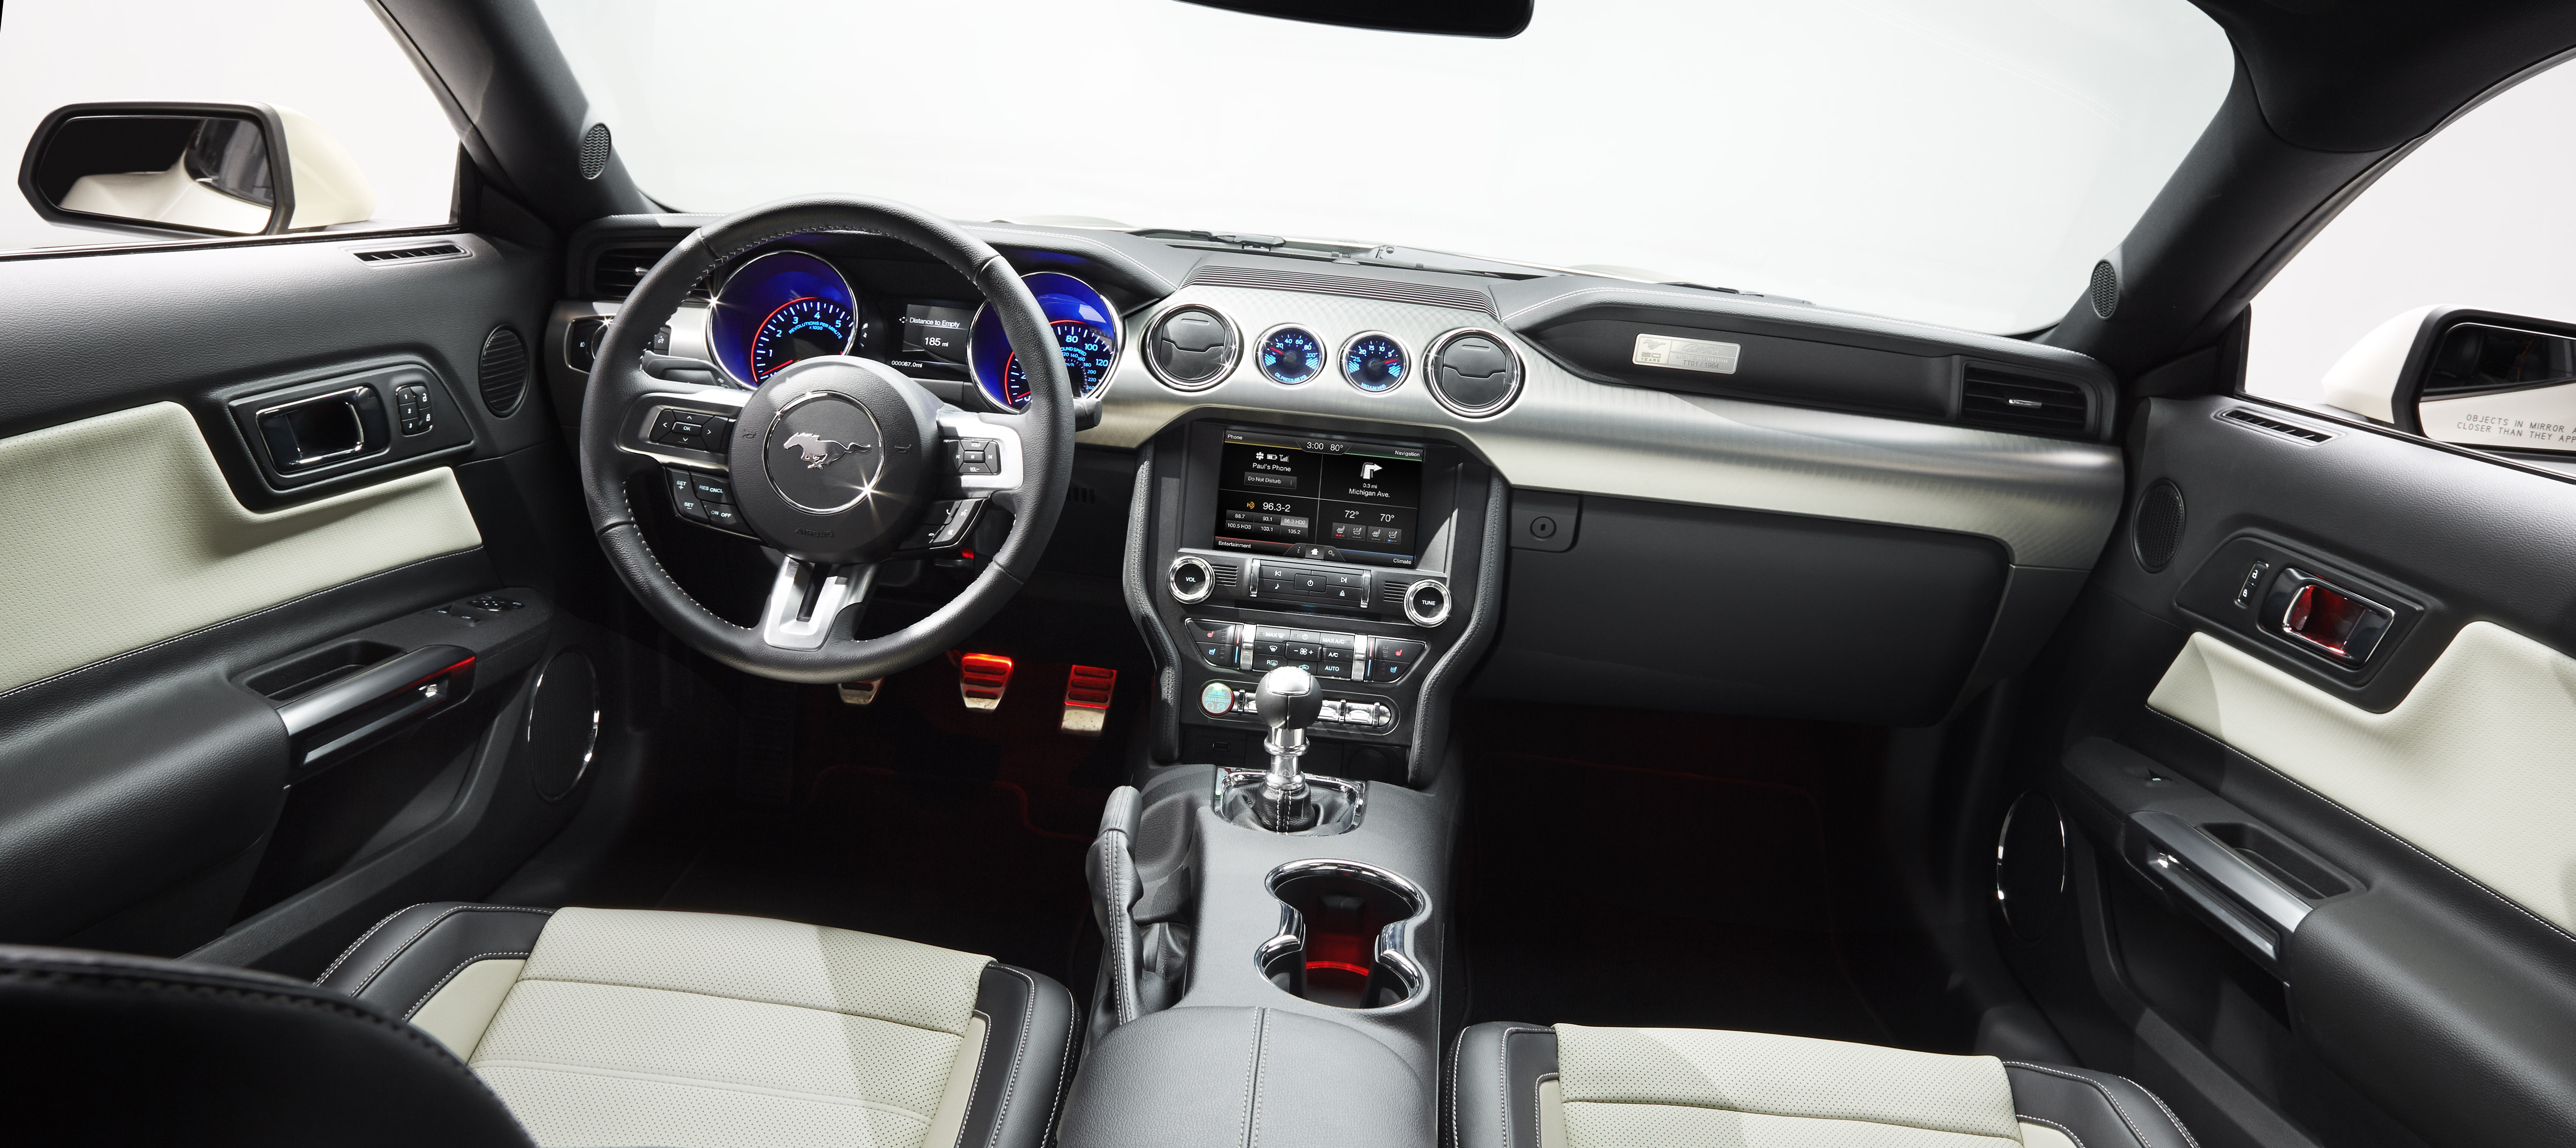 3 Reasons You Should Buy the 2015 Mustang 50 Year Limited ...